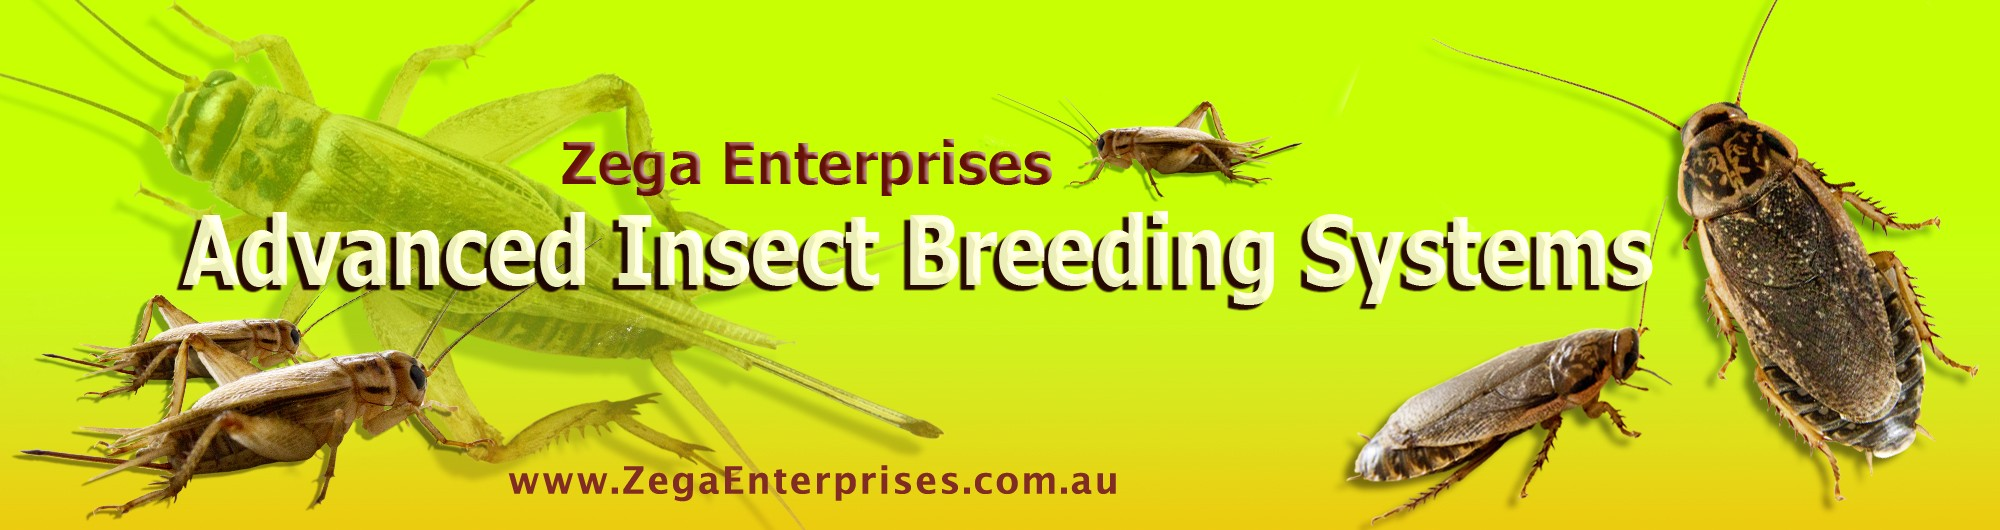 Advanced Insect Breeding Systems